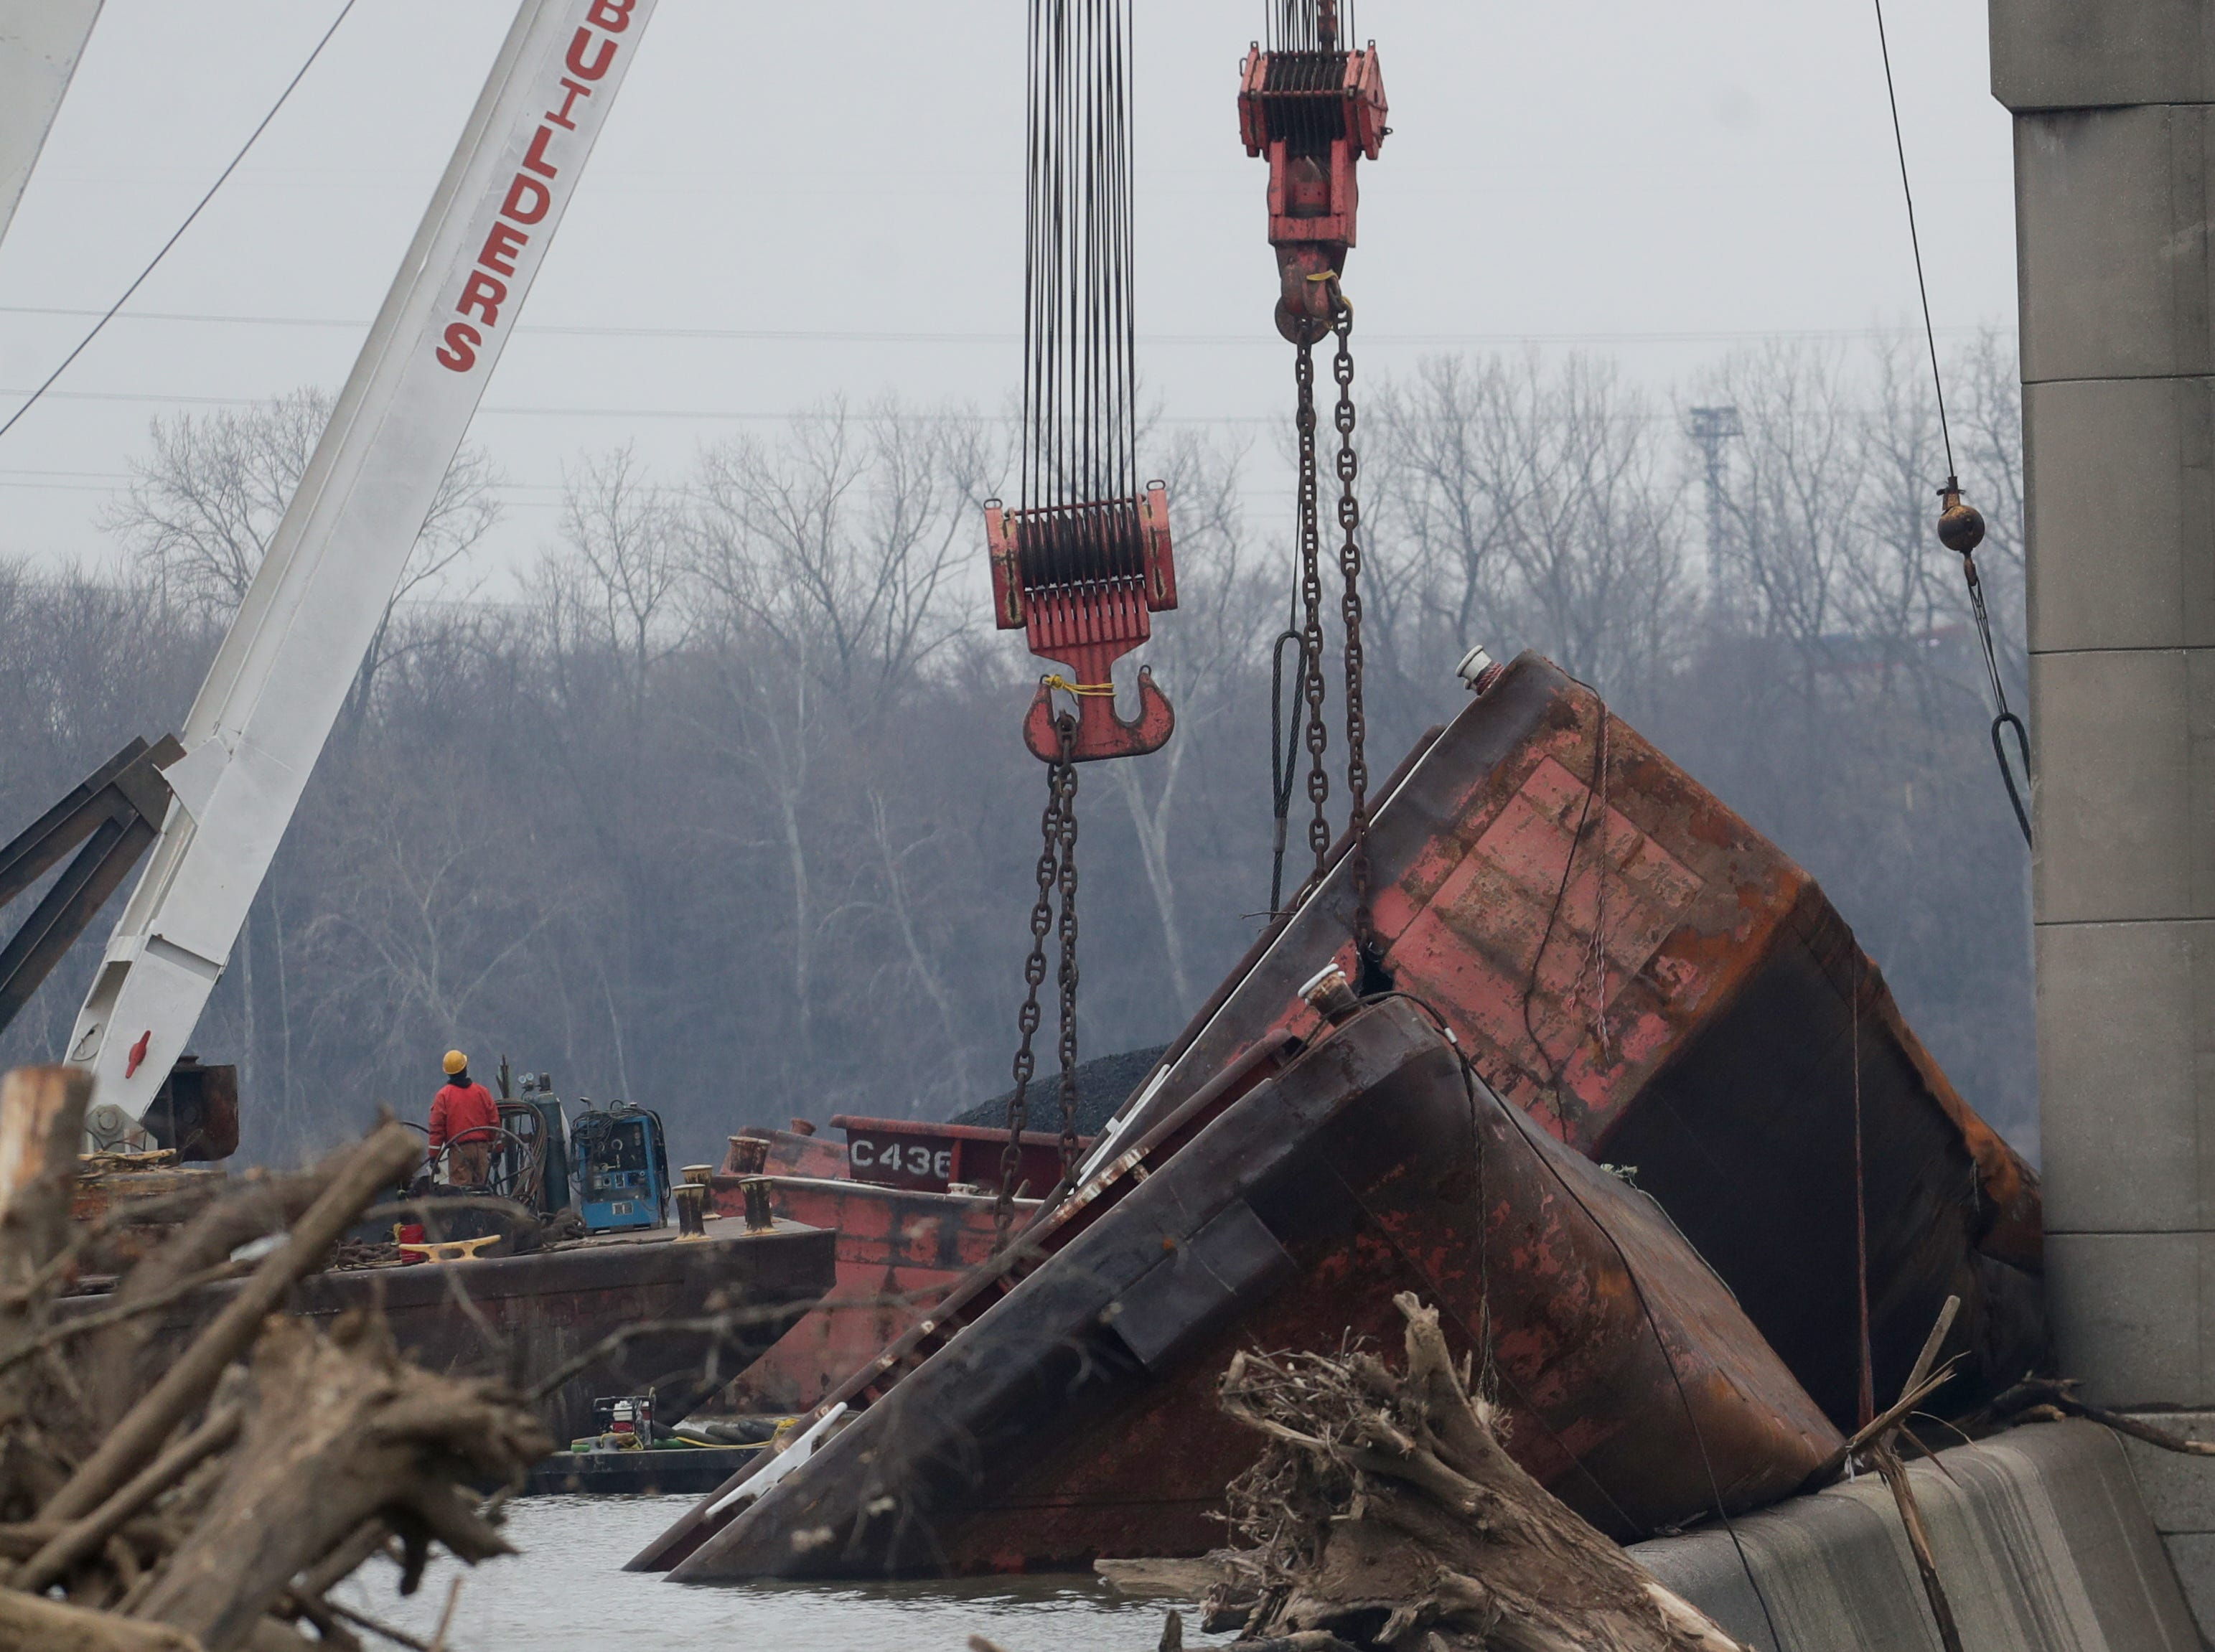 Salvage continues on the wrecked barges at the McAlpin Dam. 